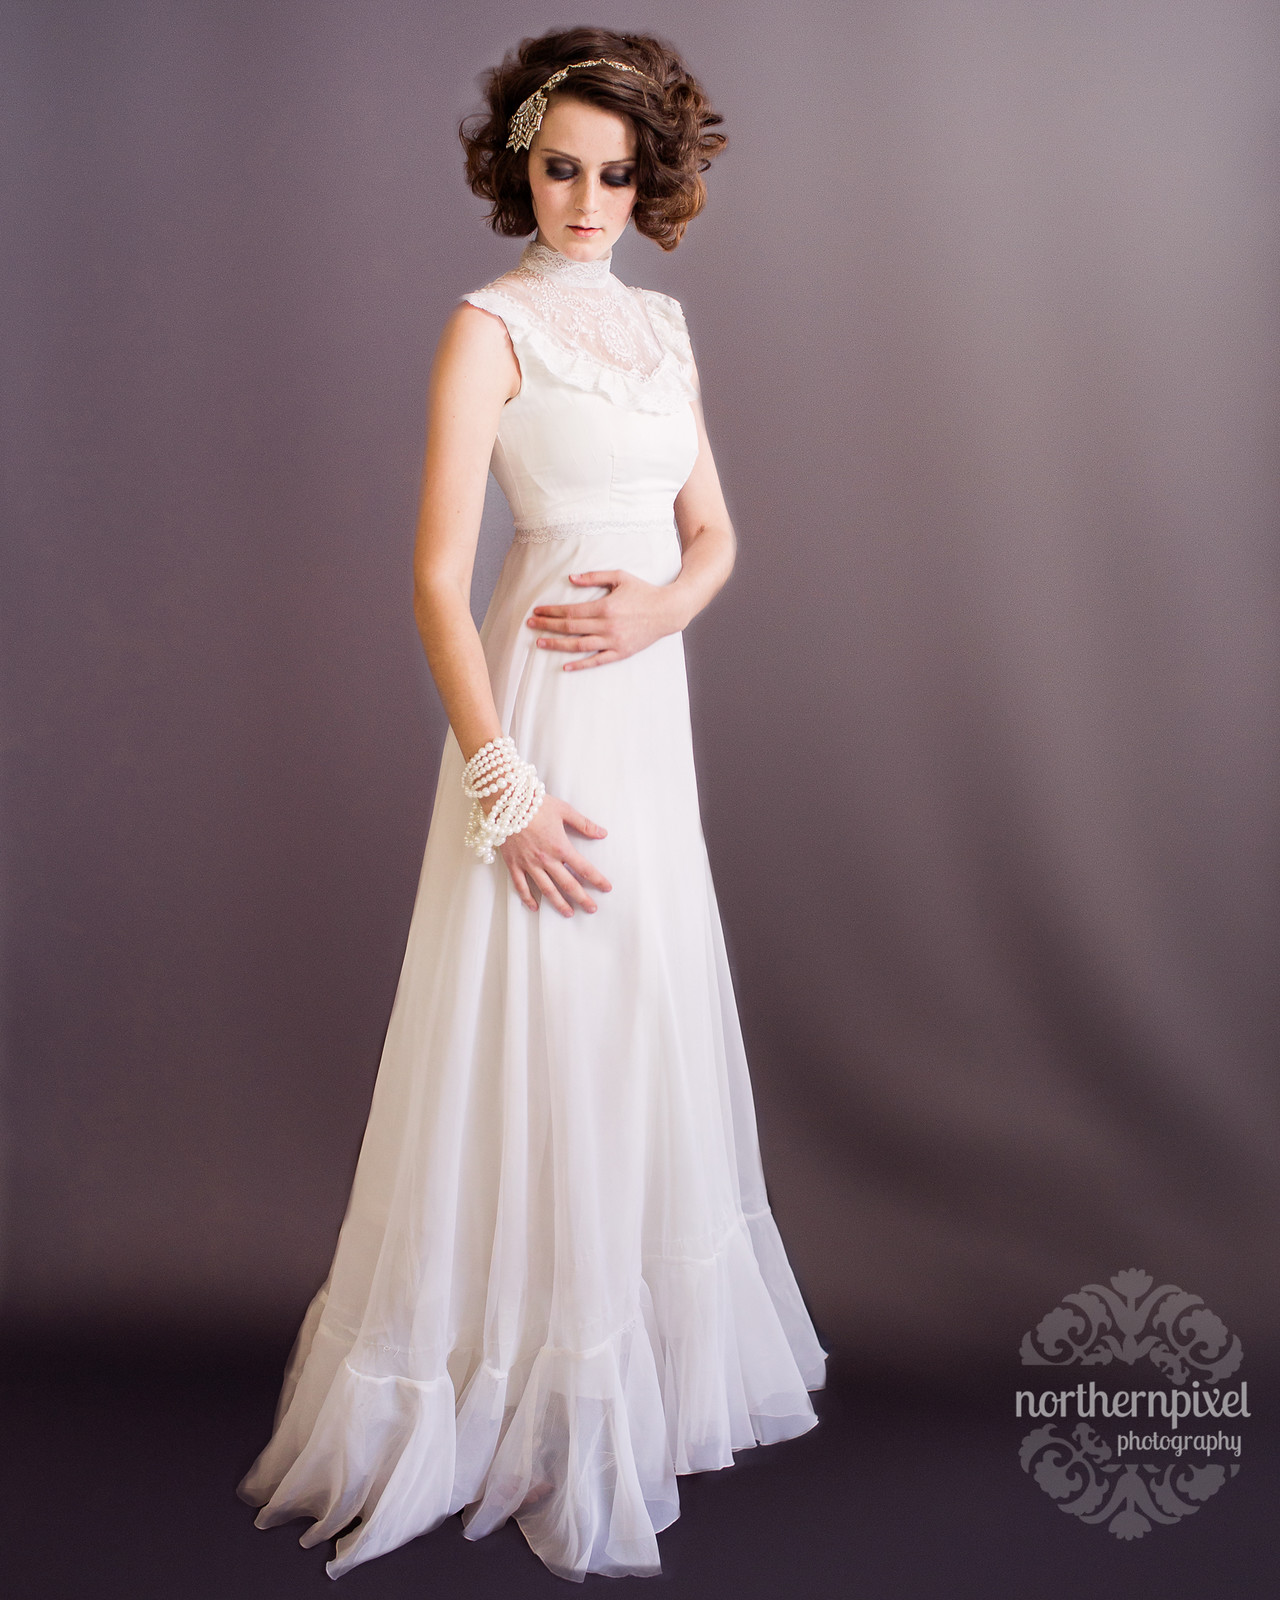 Vintage Fashion Photographer - Prince George British Columbia